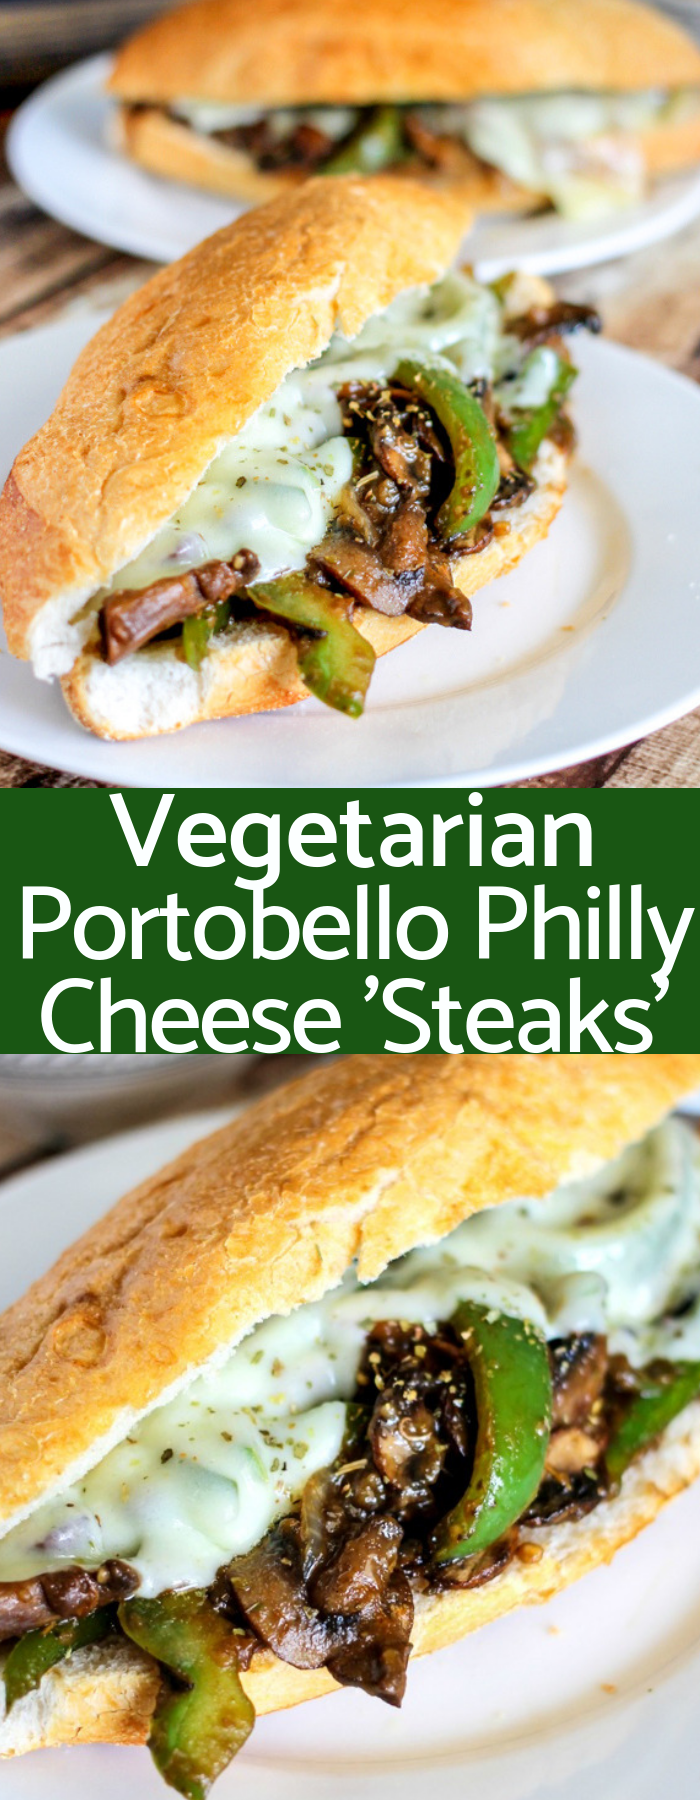 Vegetarian Portobello Philly Cheese Steaks are stuffed with mushrooms, peppers, and onions then topped with provolone cheese. Ready in 20 minutes!